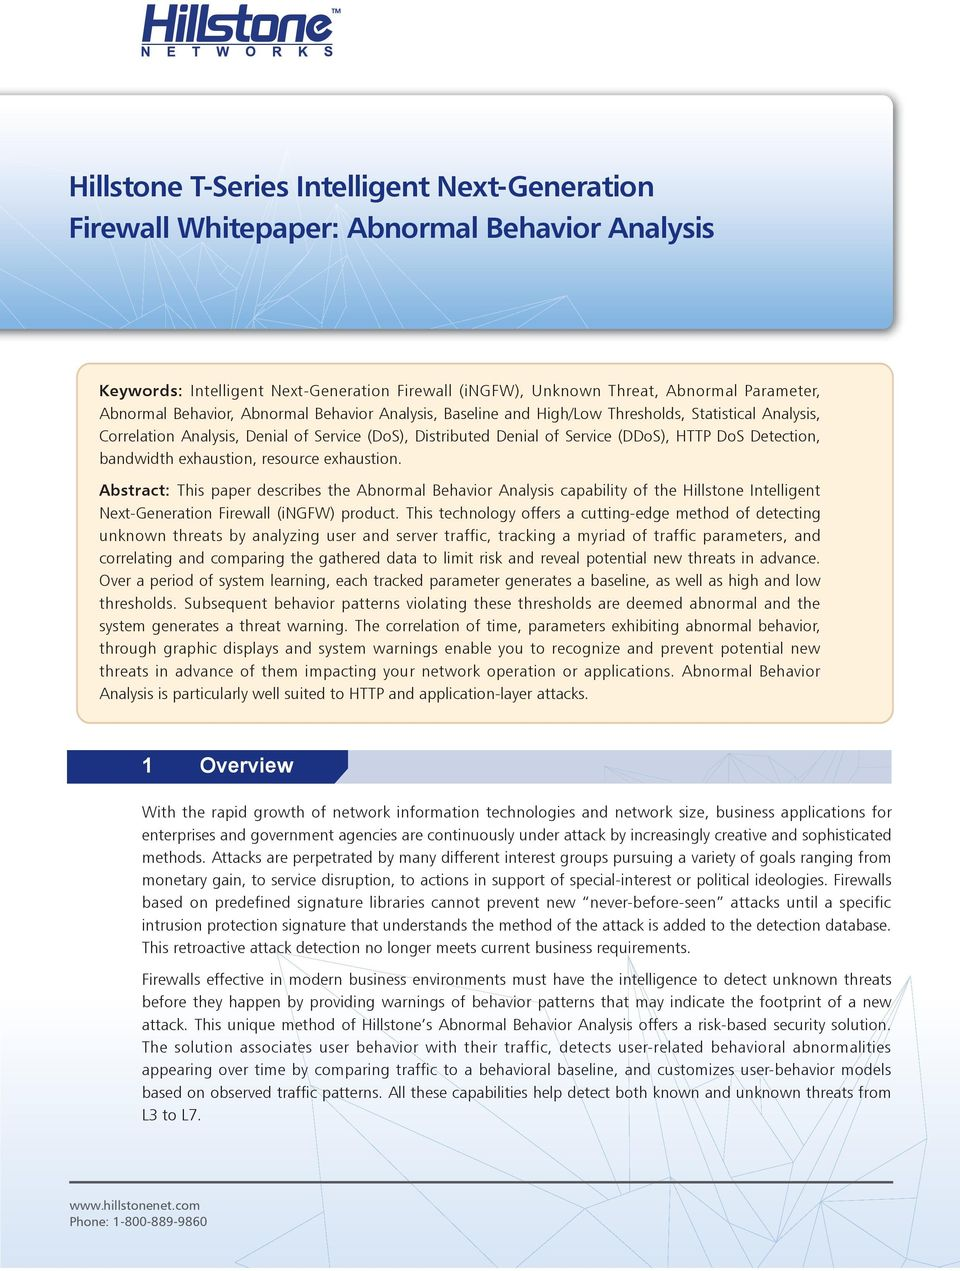 bandwidth exhaustion, resource exhaustion. Abstract: This paper describes the Abnormal Behavior Analysis capability of the Hillstone Intelligent Next-Generation Firewall (ingfw) product.